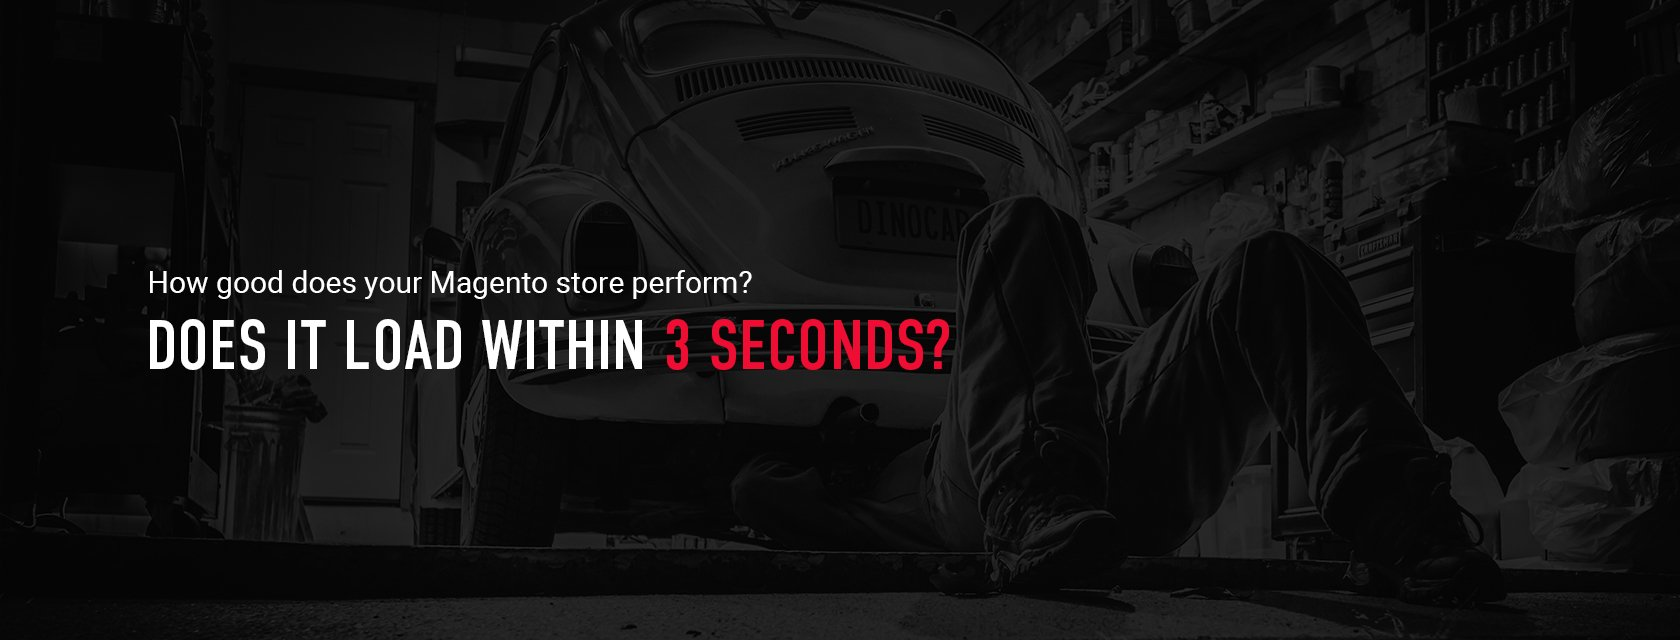 Is your Magento 2 Store's load time under 3 seconds?